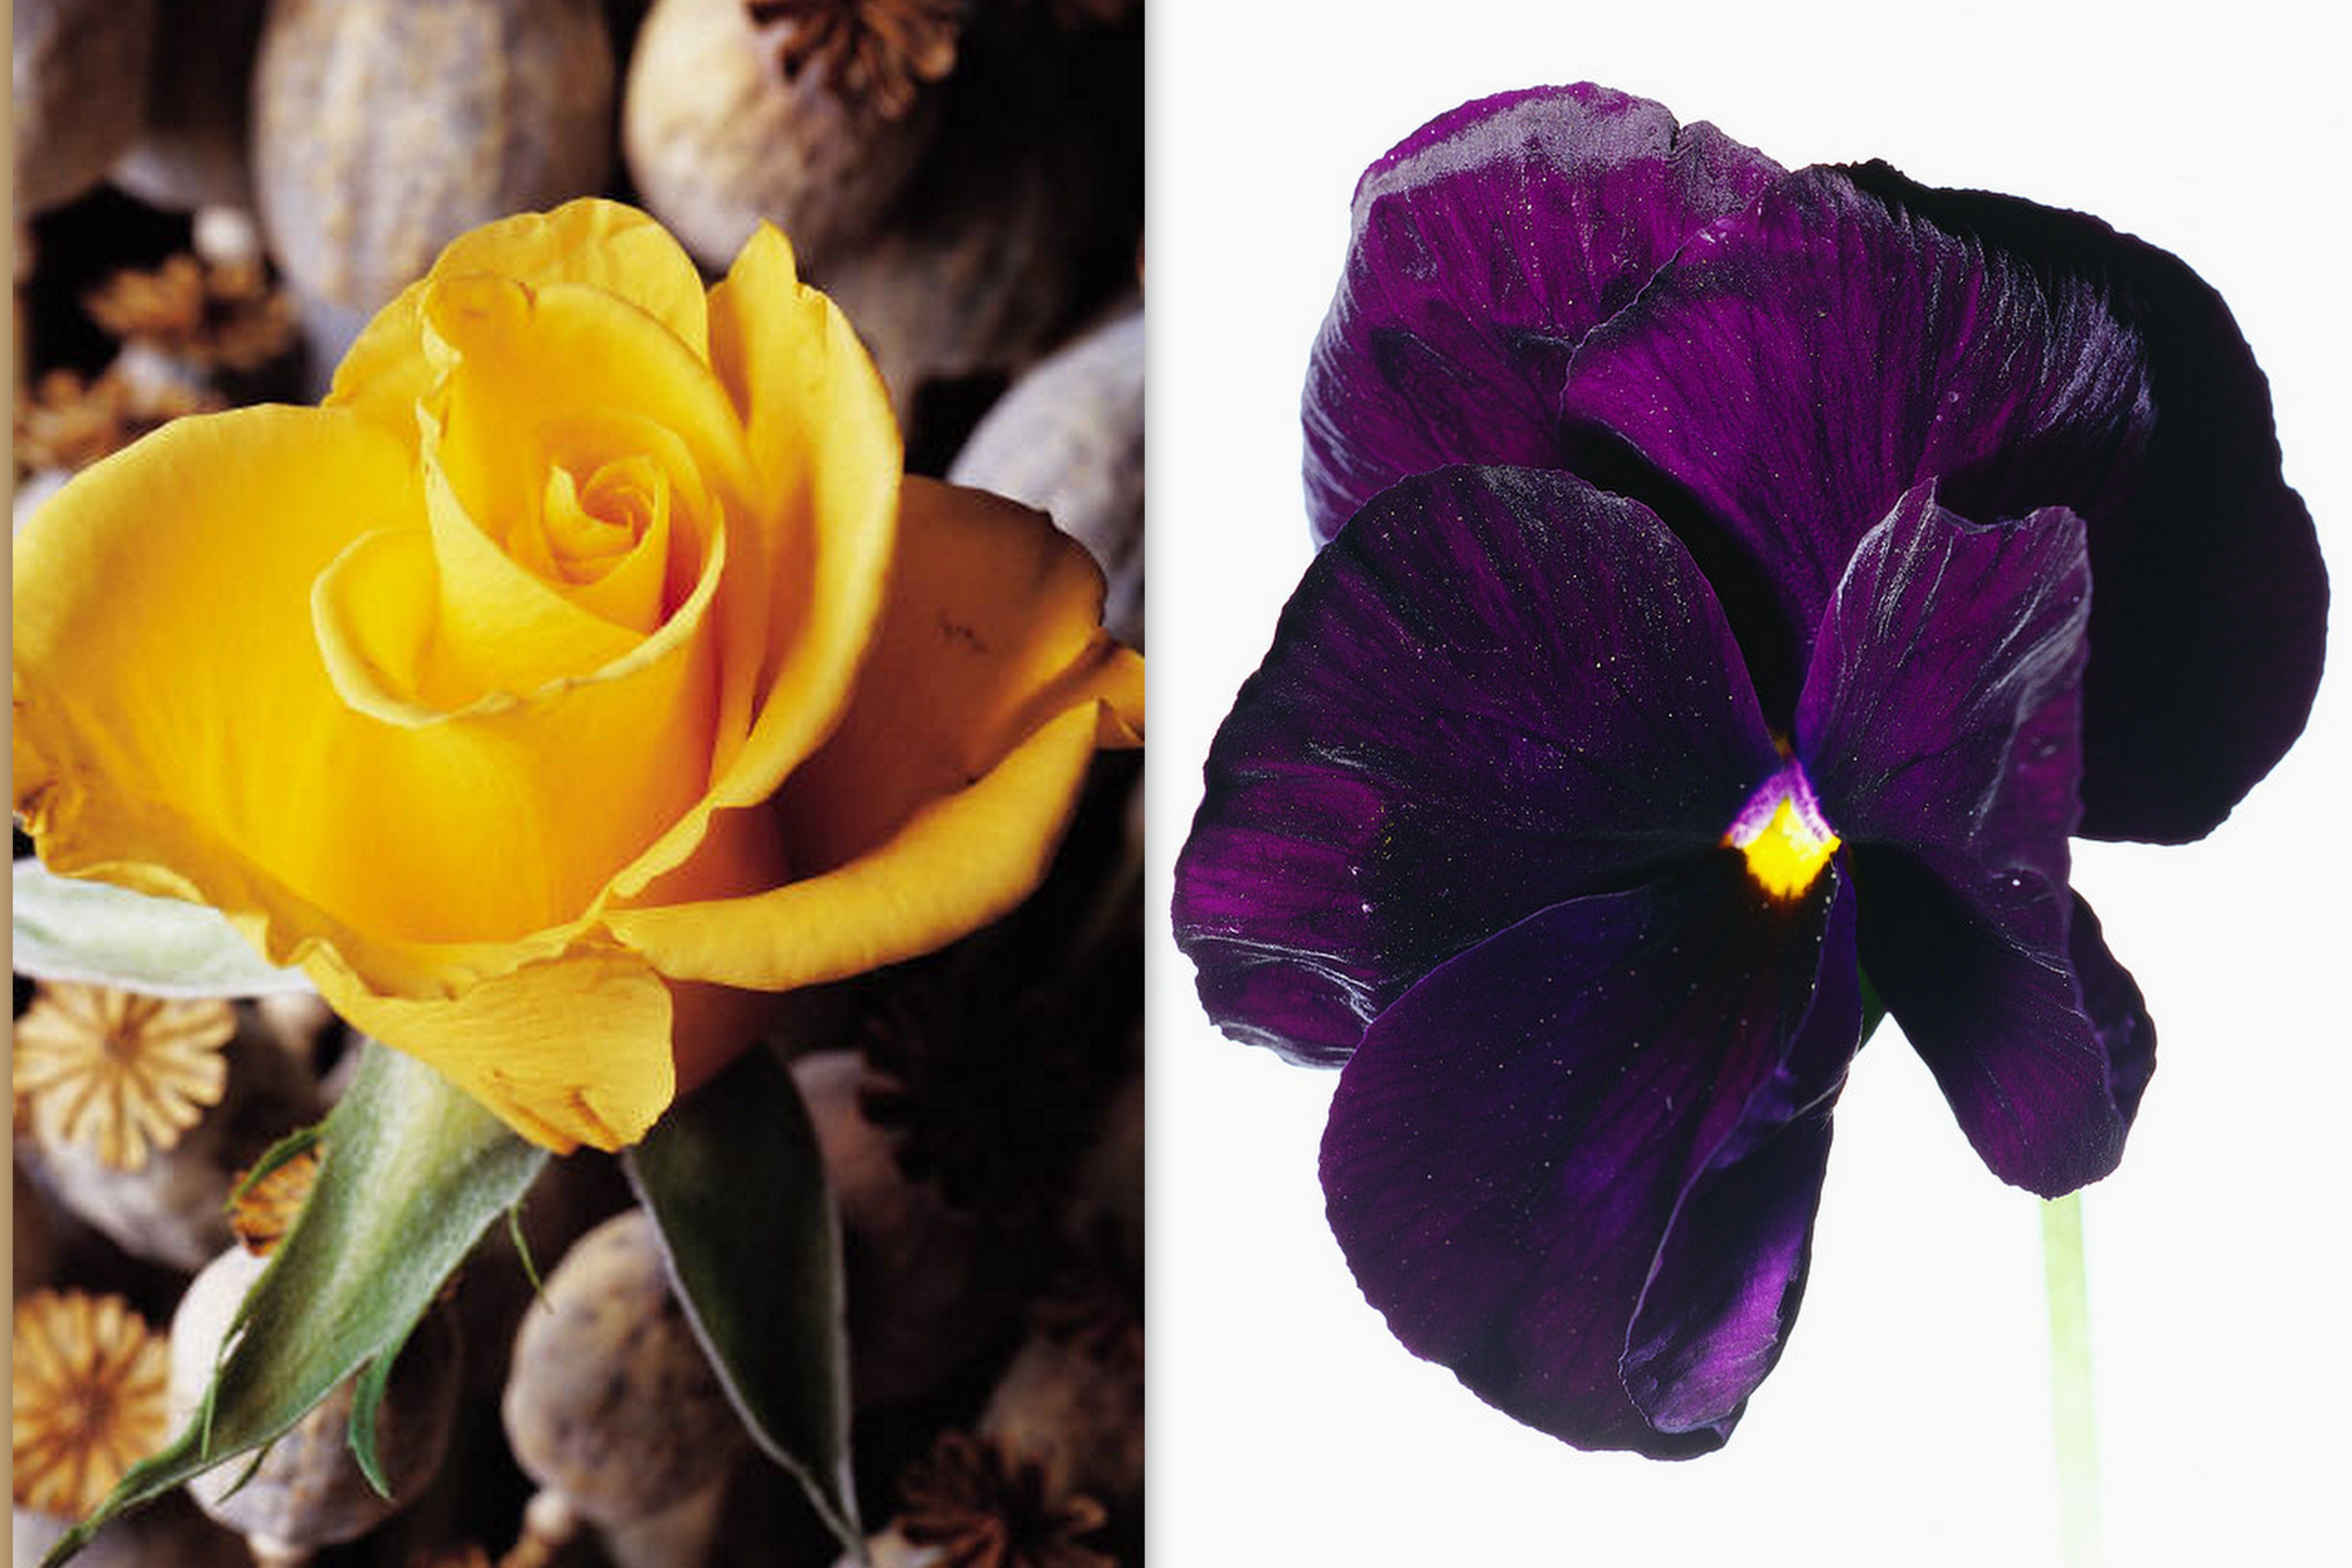 50TH ANNIVERSARY FLOWERS YELLOW ROSE & VIOLET Celebrates virtue humility and faith